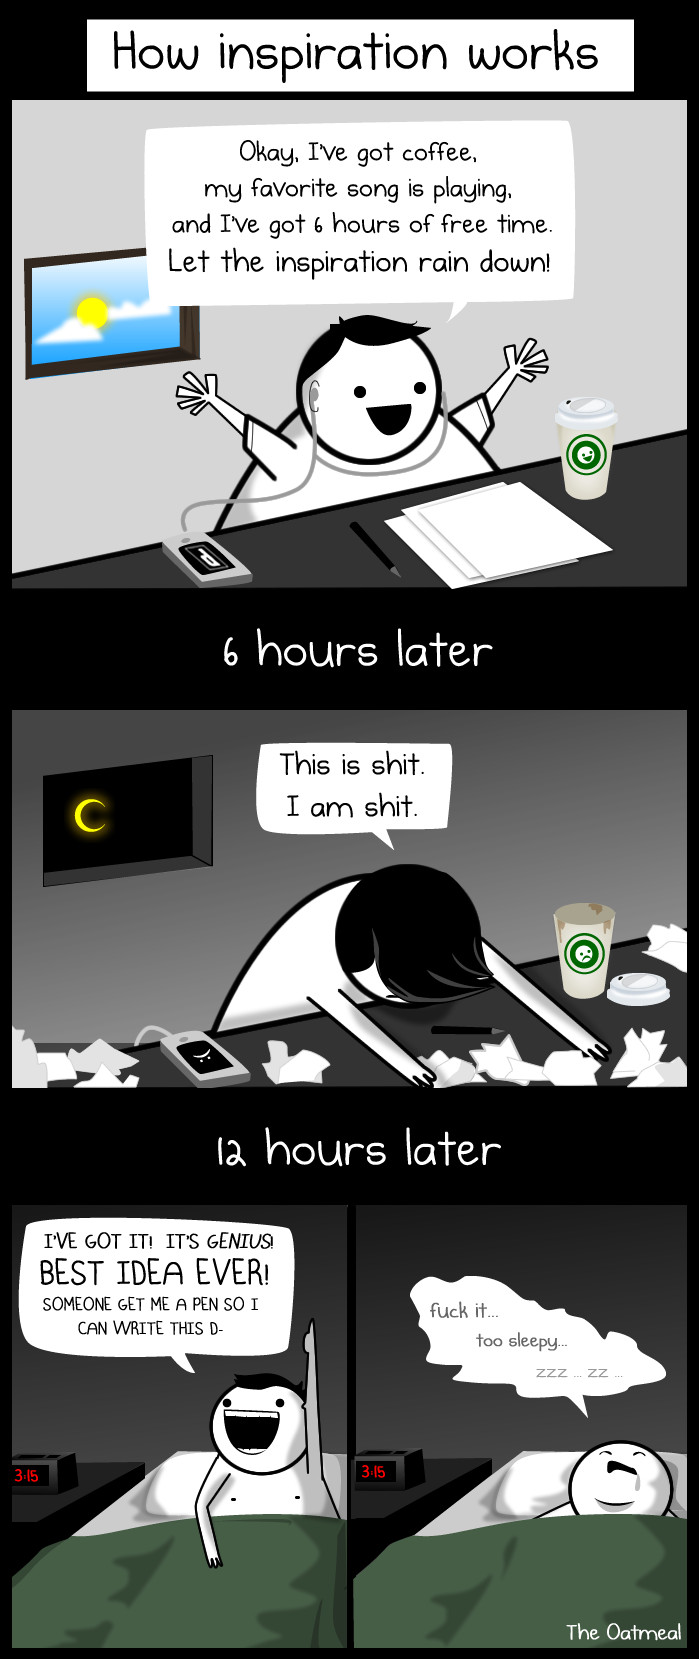 oatmeal:  How inspiration works.  Read the rest of the comic here: http://theoatmeal.com/comics/making_things